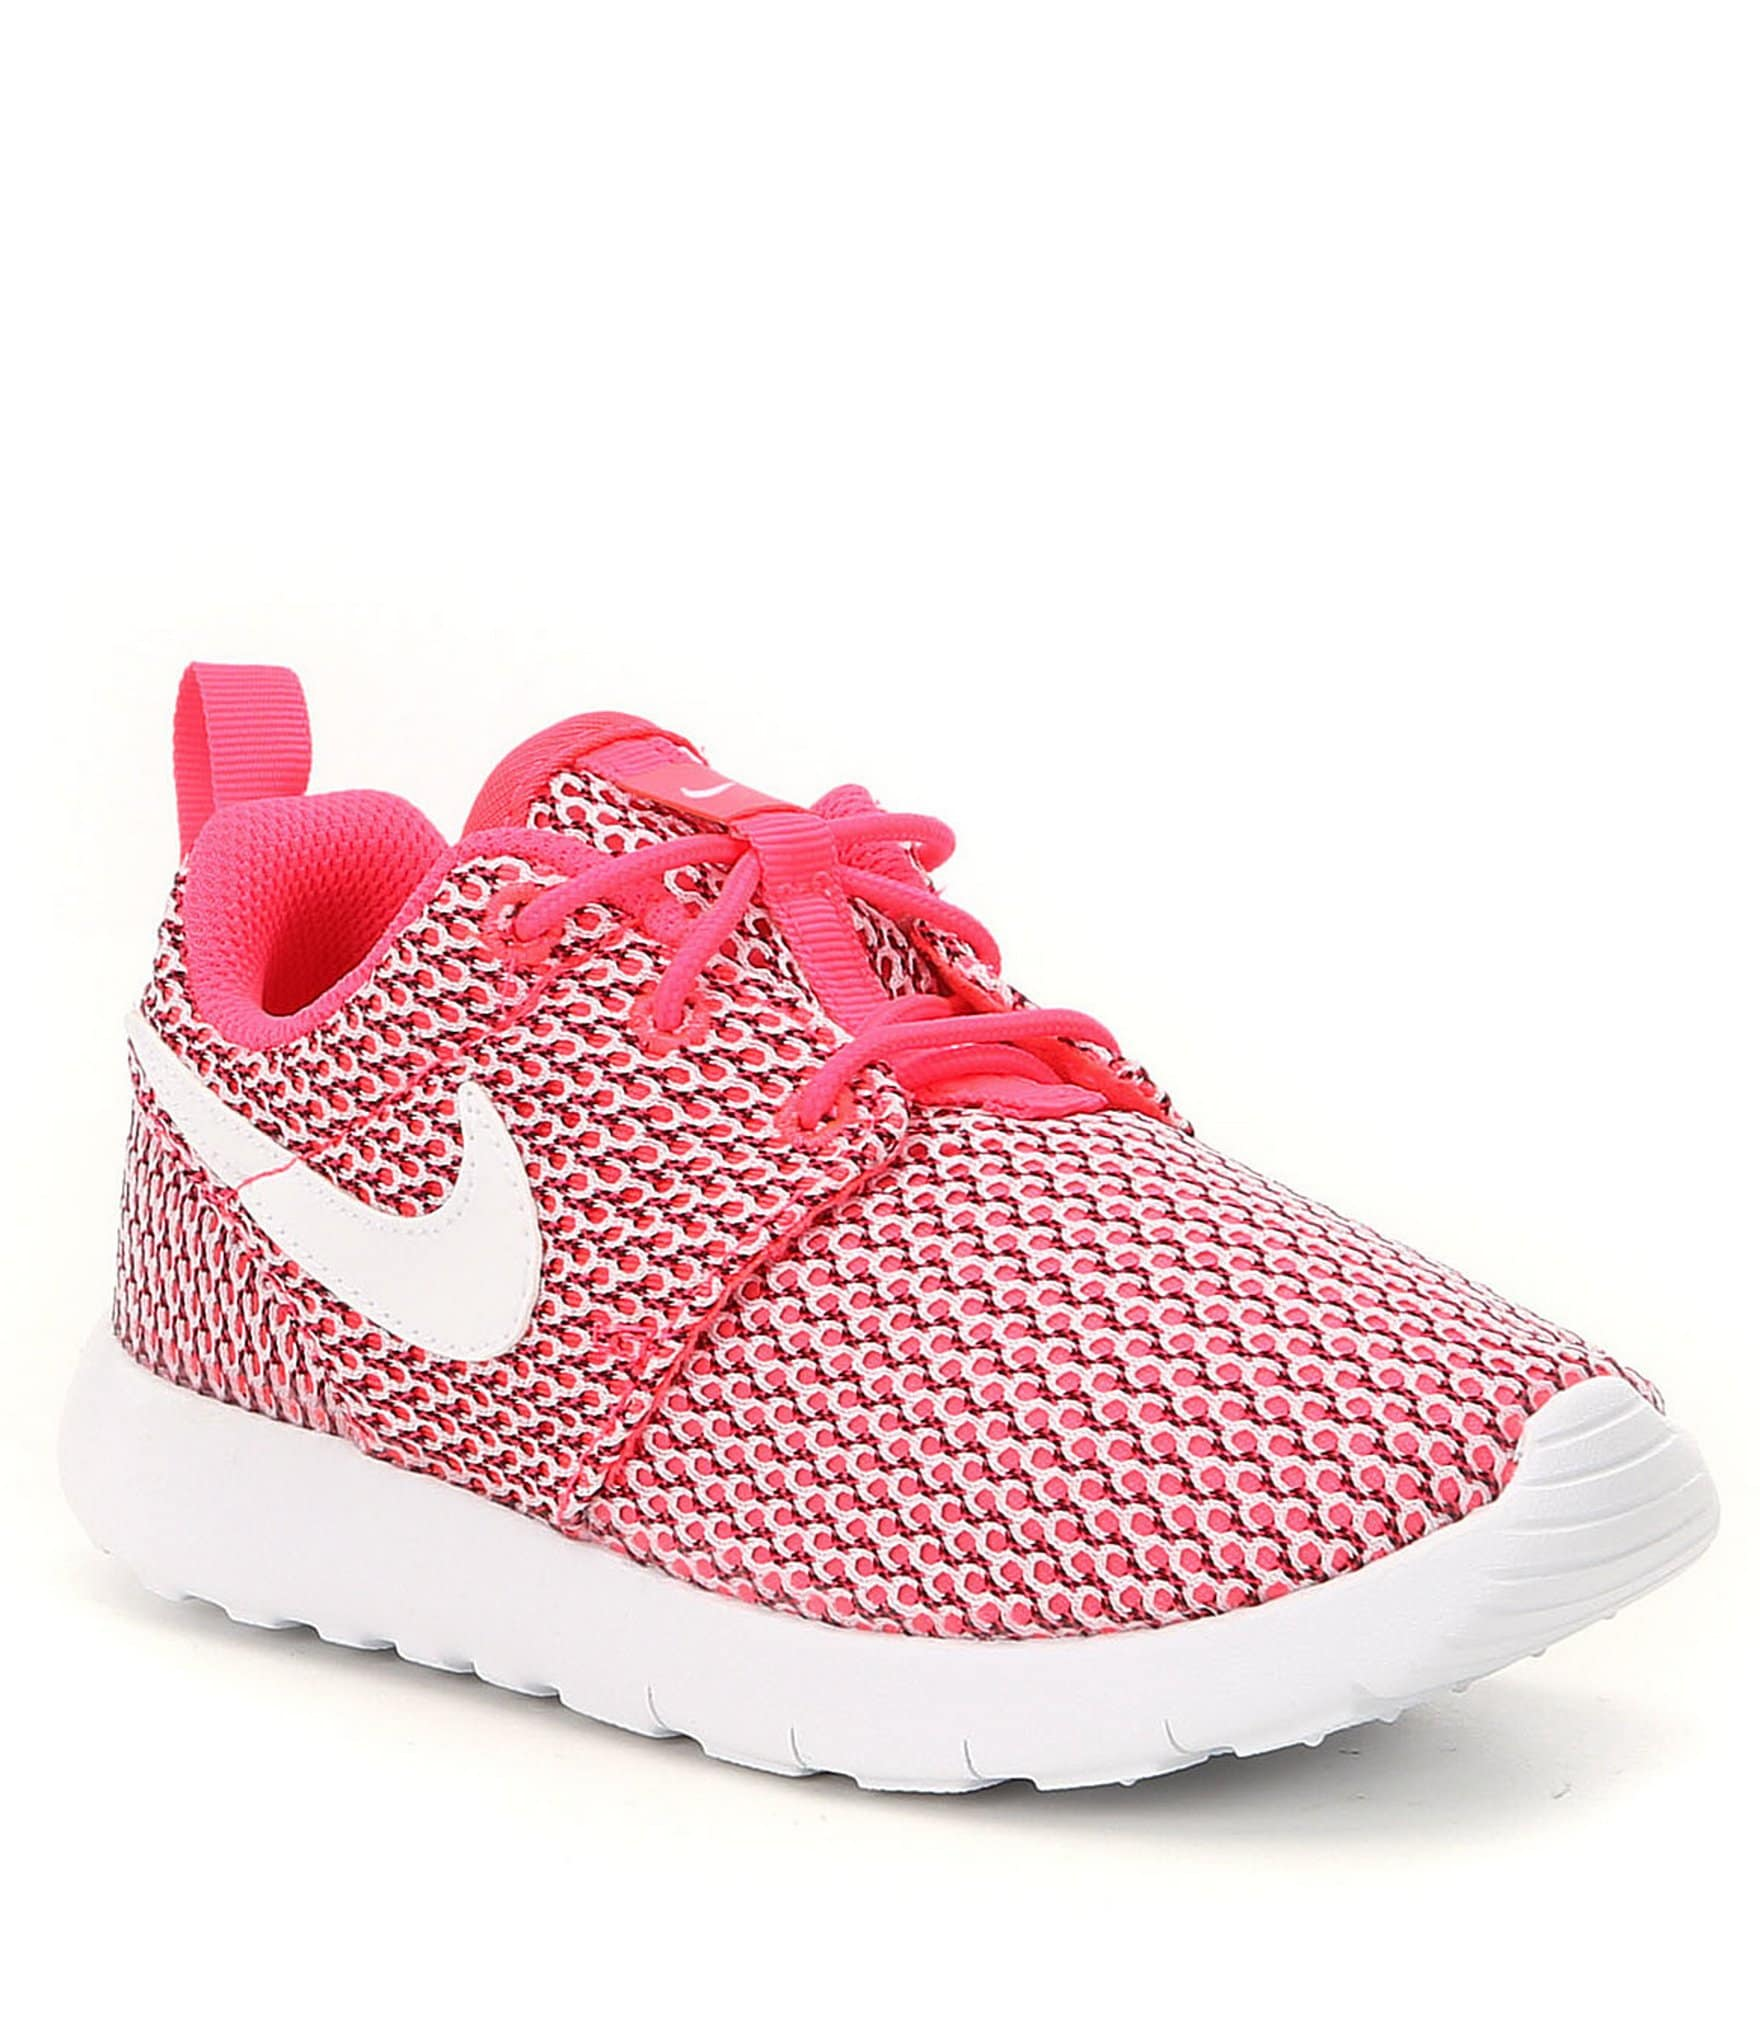 c27669d634 pink shoes sale   OFF77% Discounts